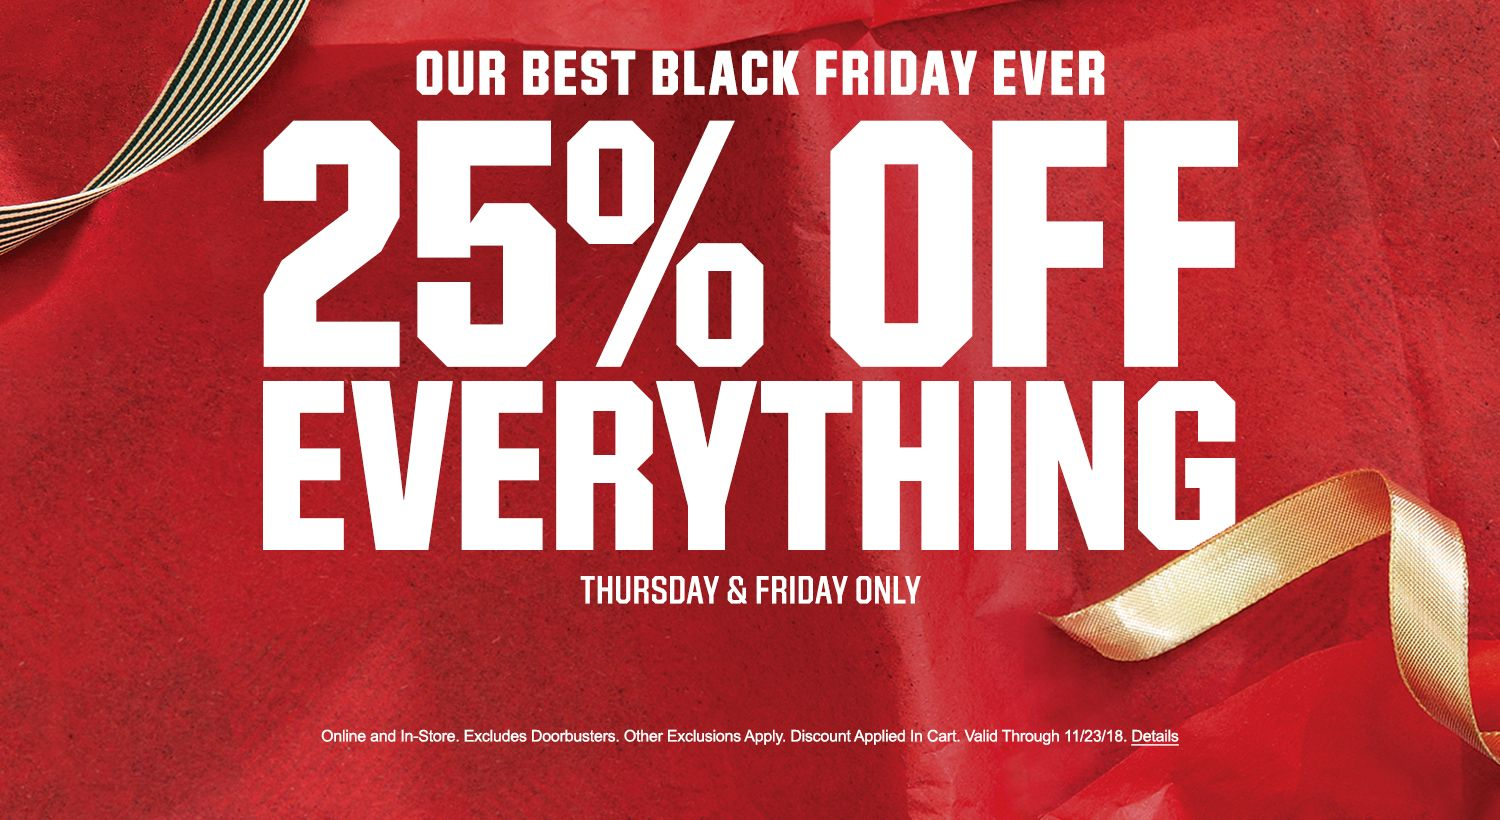 Our Best Black Friday 25% Off Everything - Thursday & Friday Only